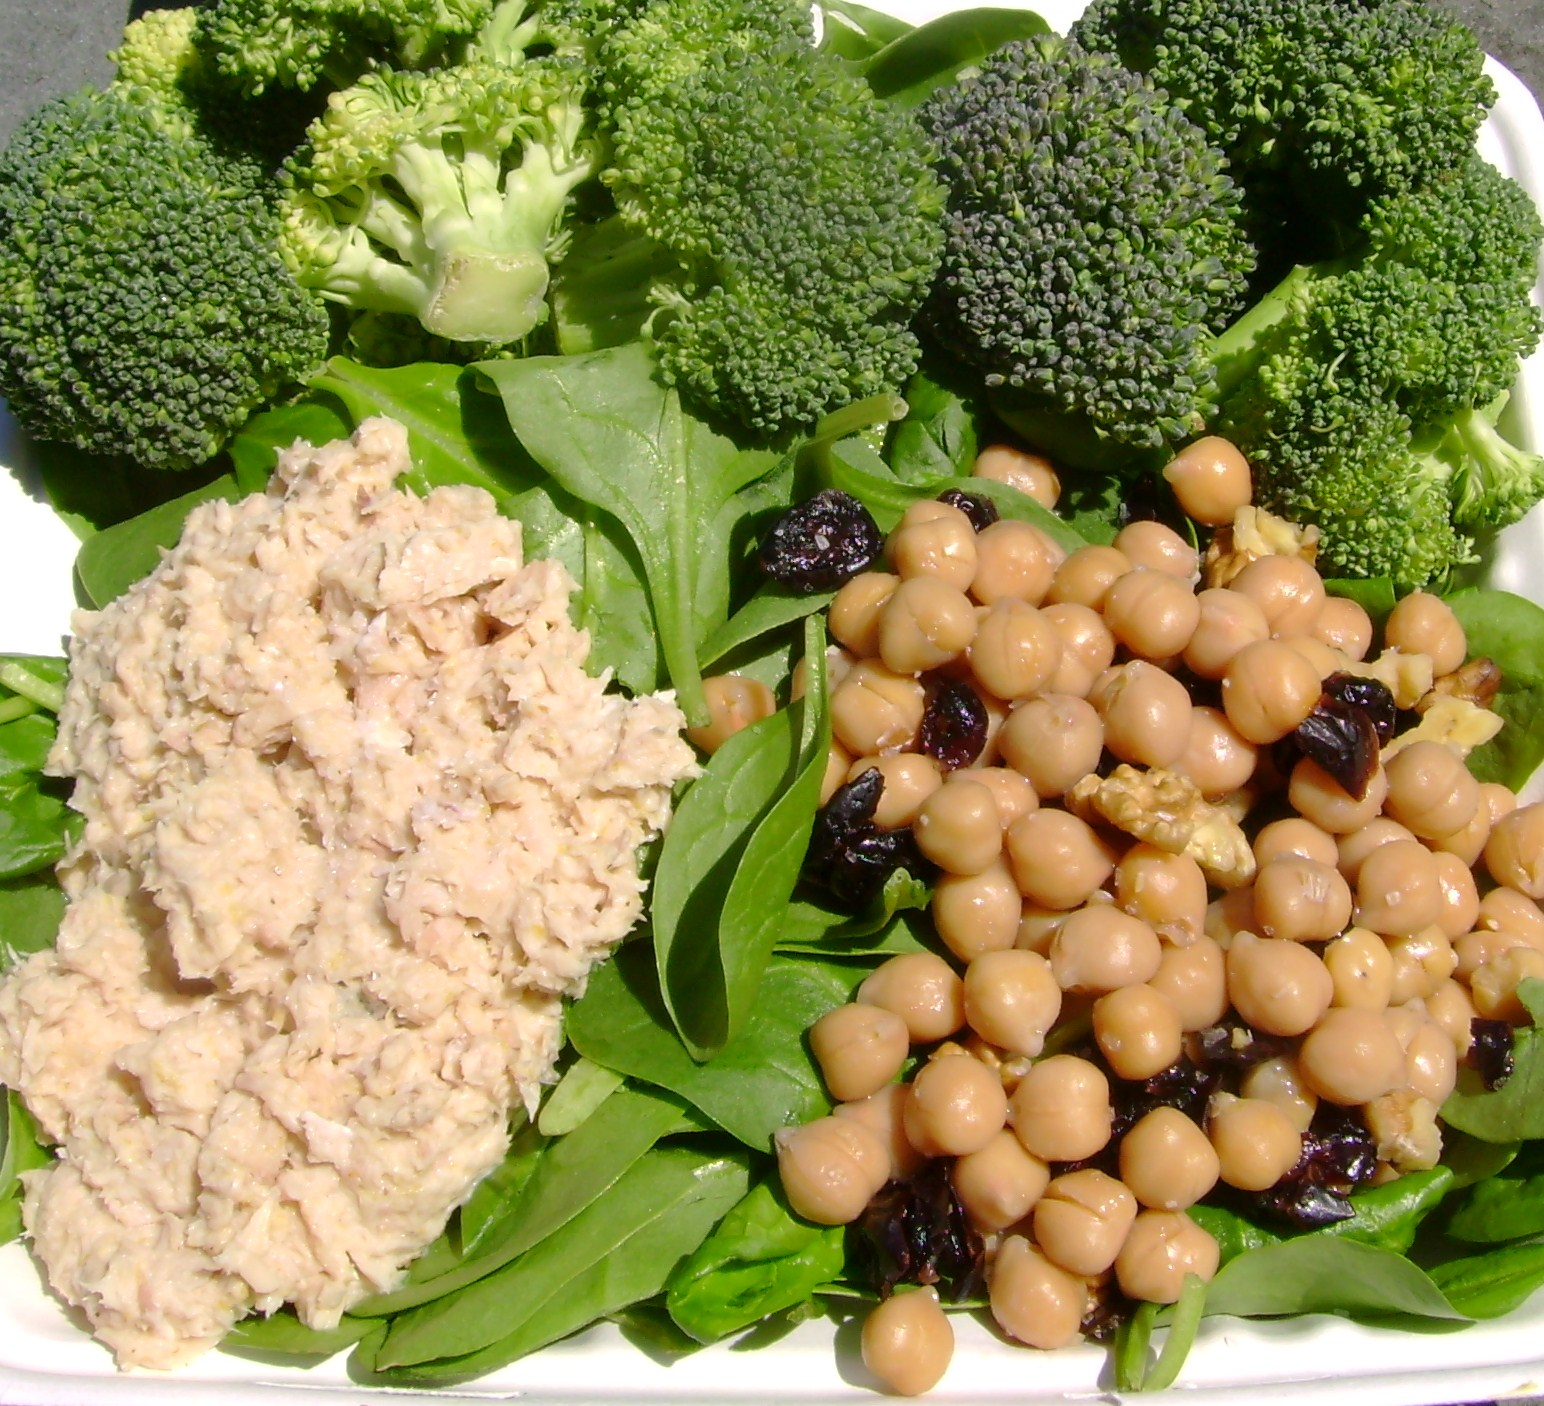 Tuna Salad With Mustard, Raw Broccoli, Chickpea Salad With Walnuts And Craisins